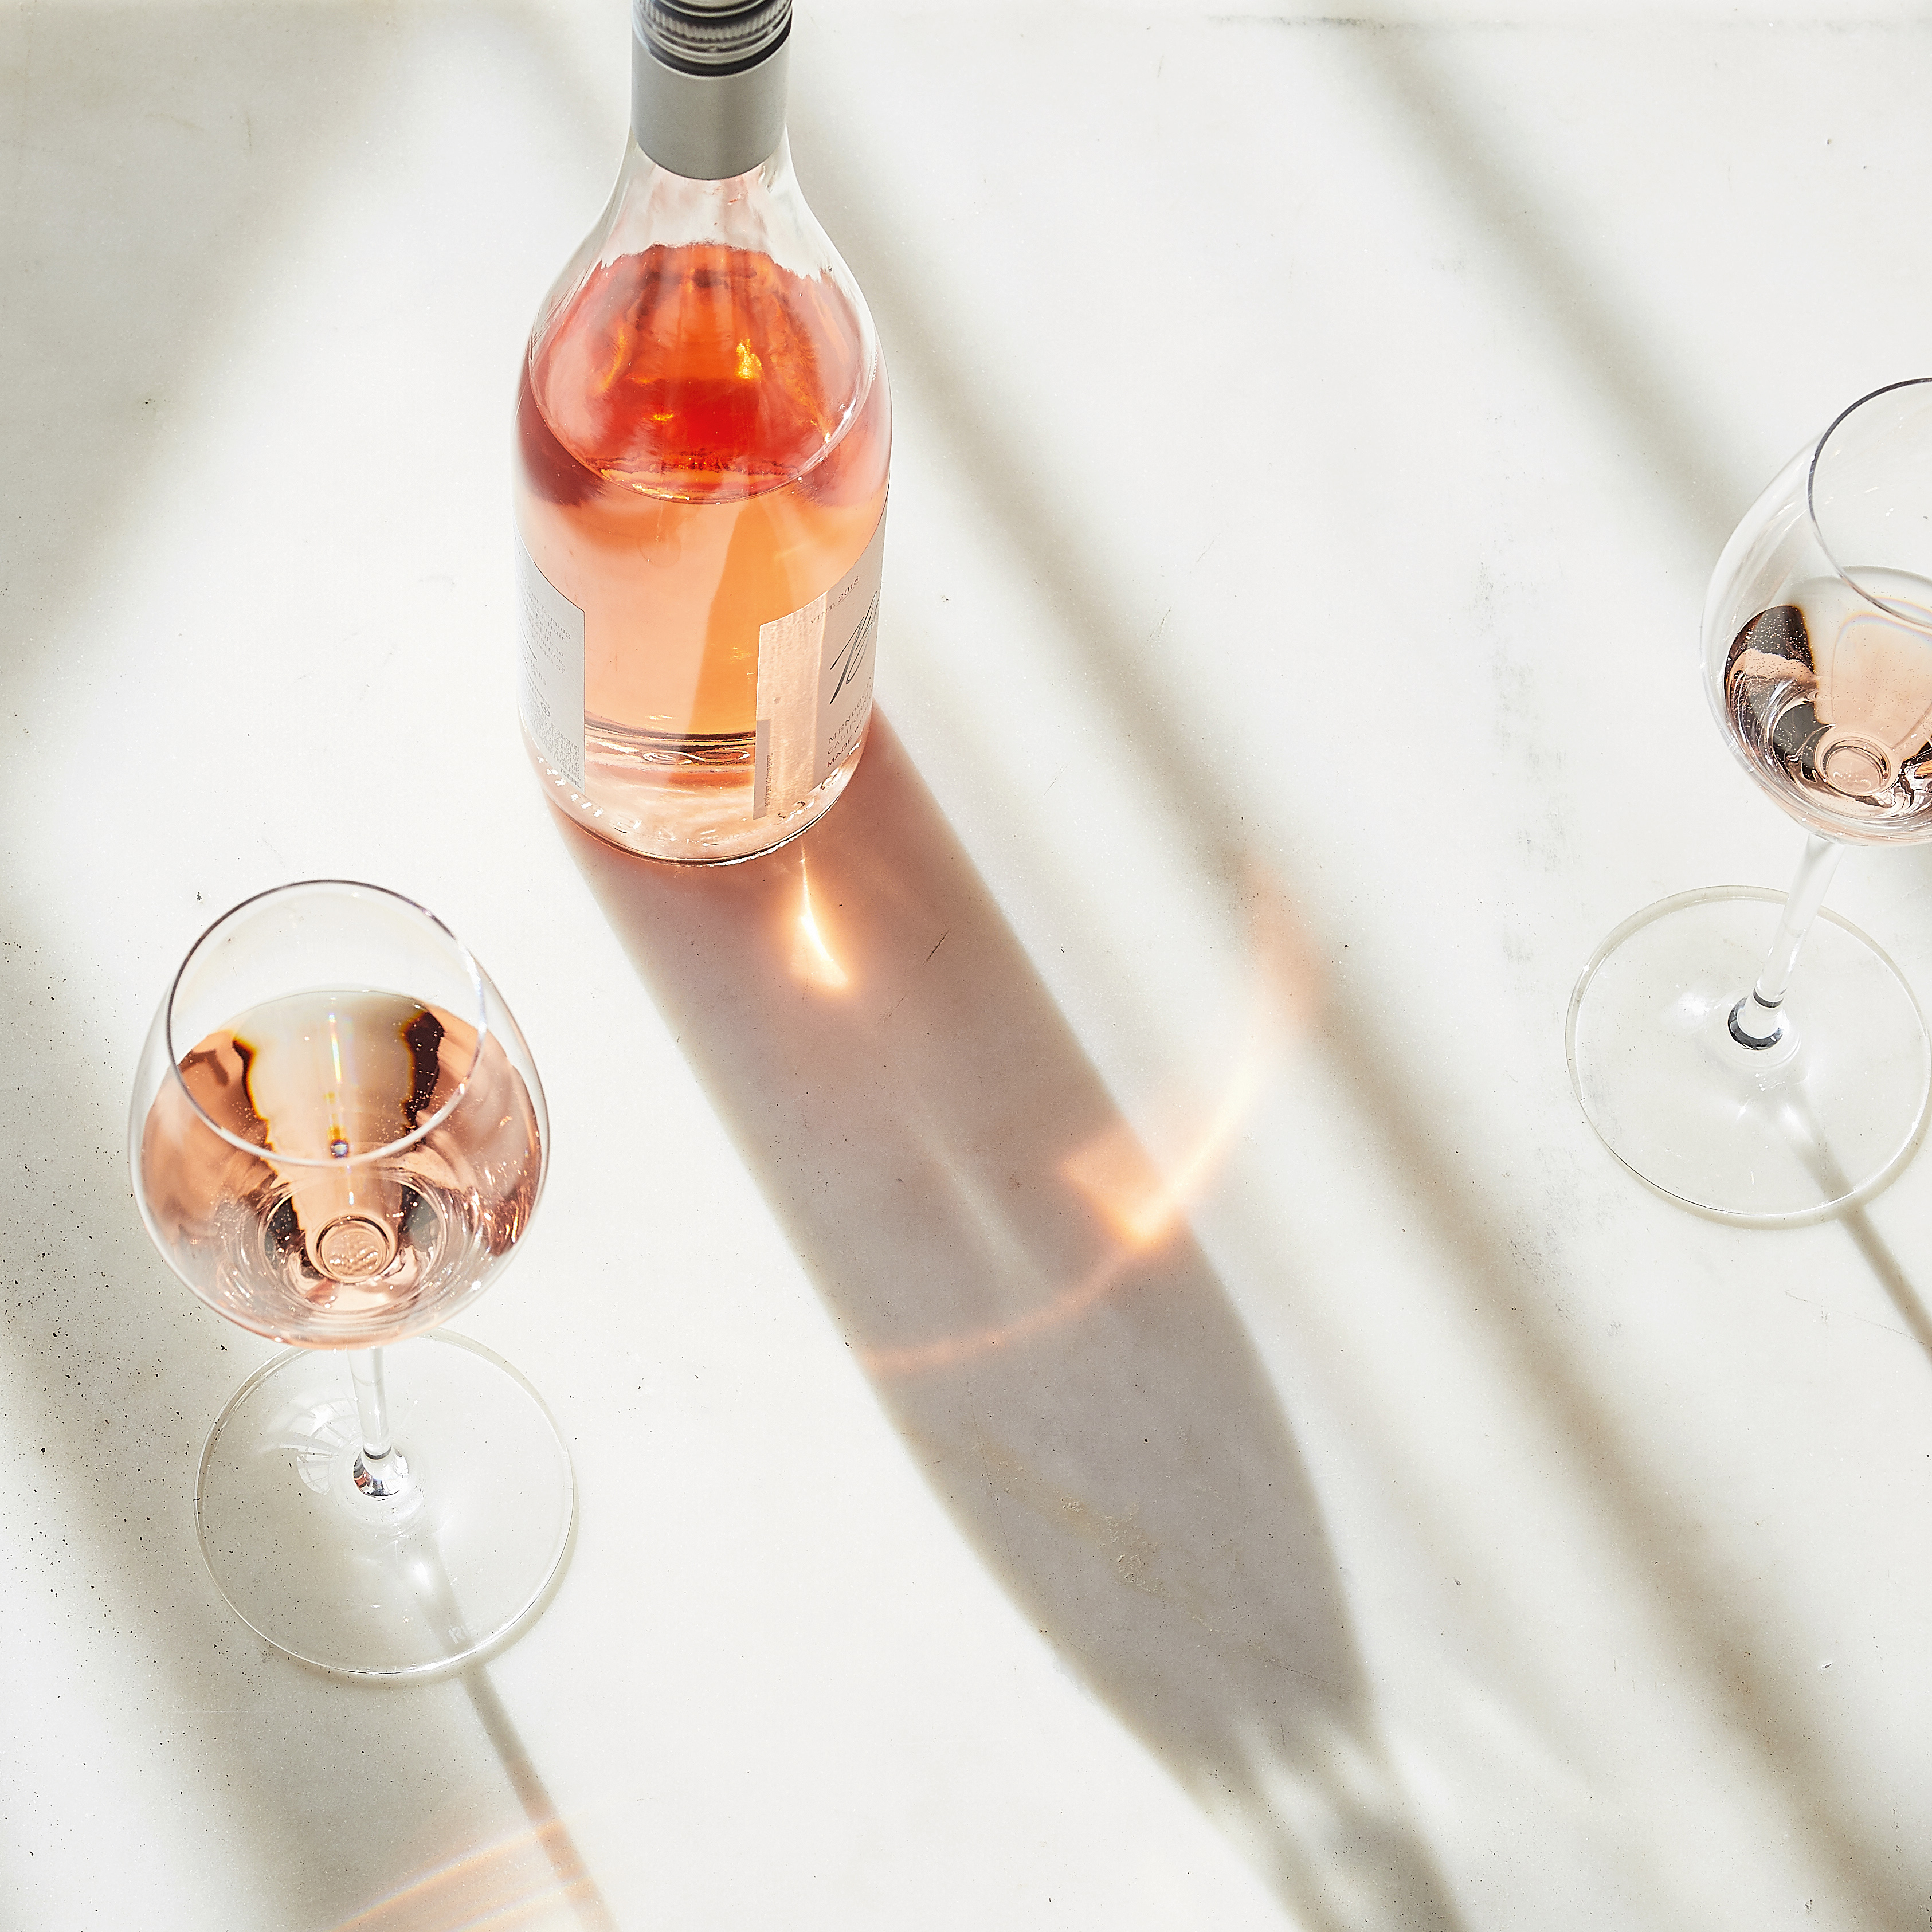 rose wine bottle and glass on table